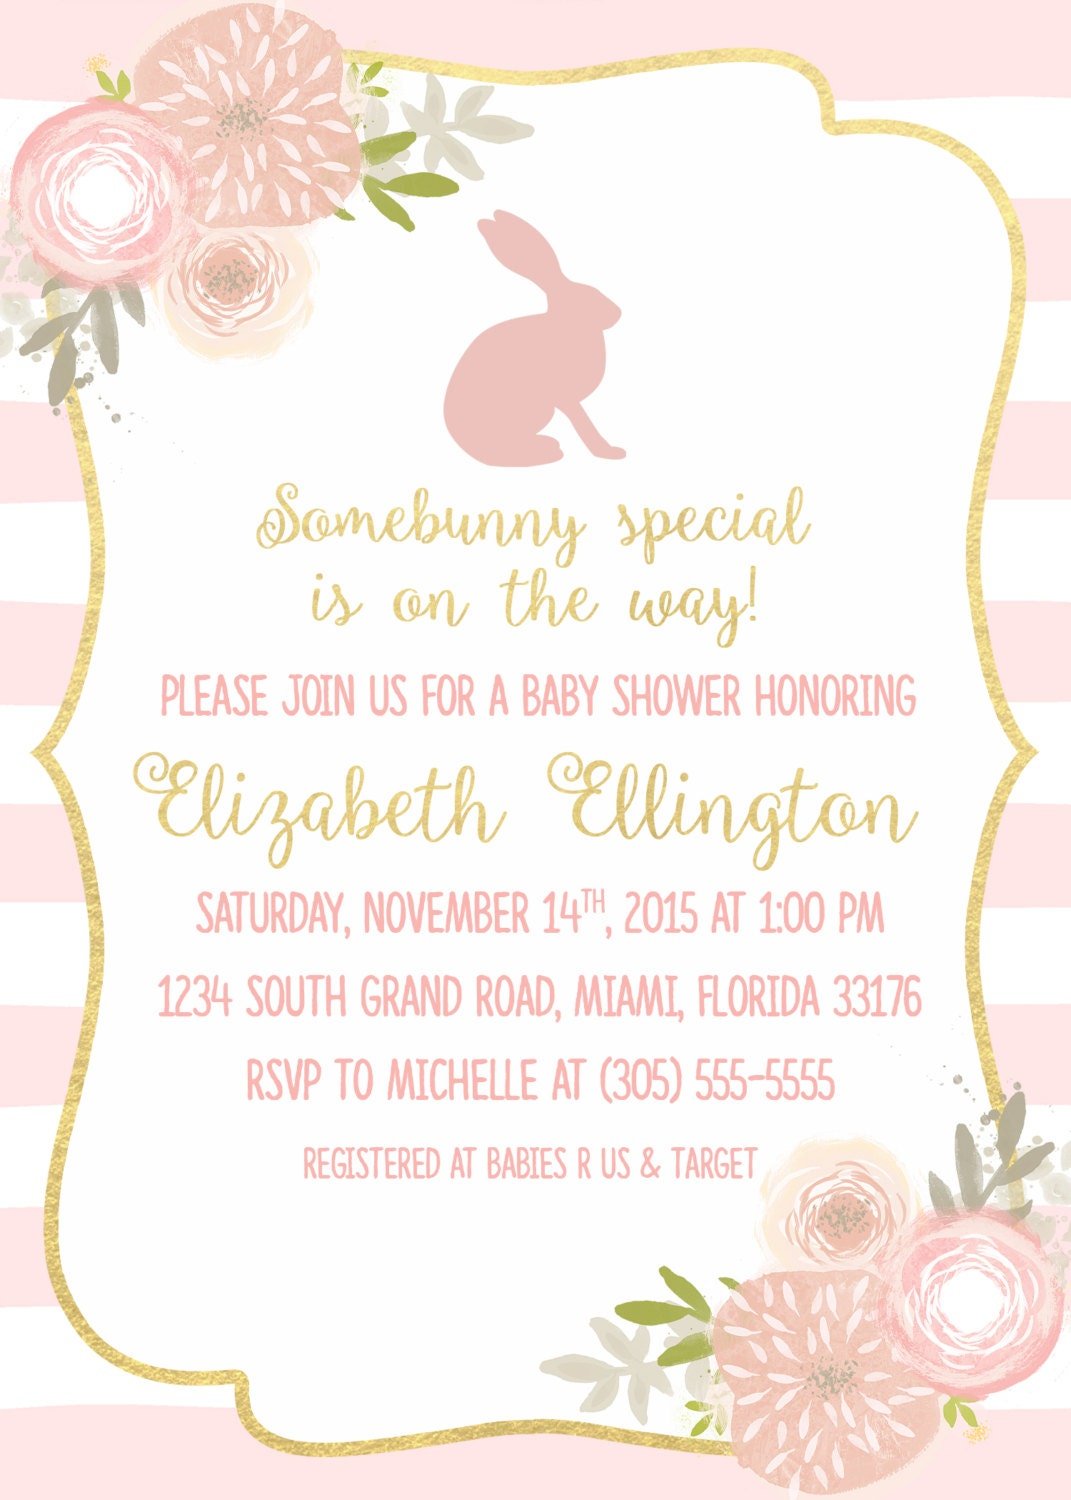 Bunny Pink and Gold Baby Shower Invitation, Somebunny Special is on ...